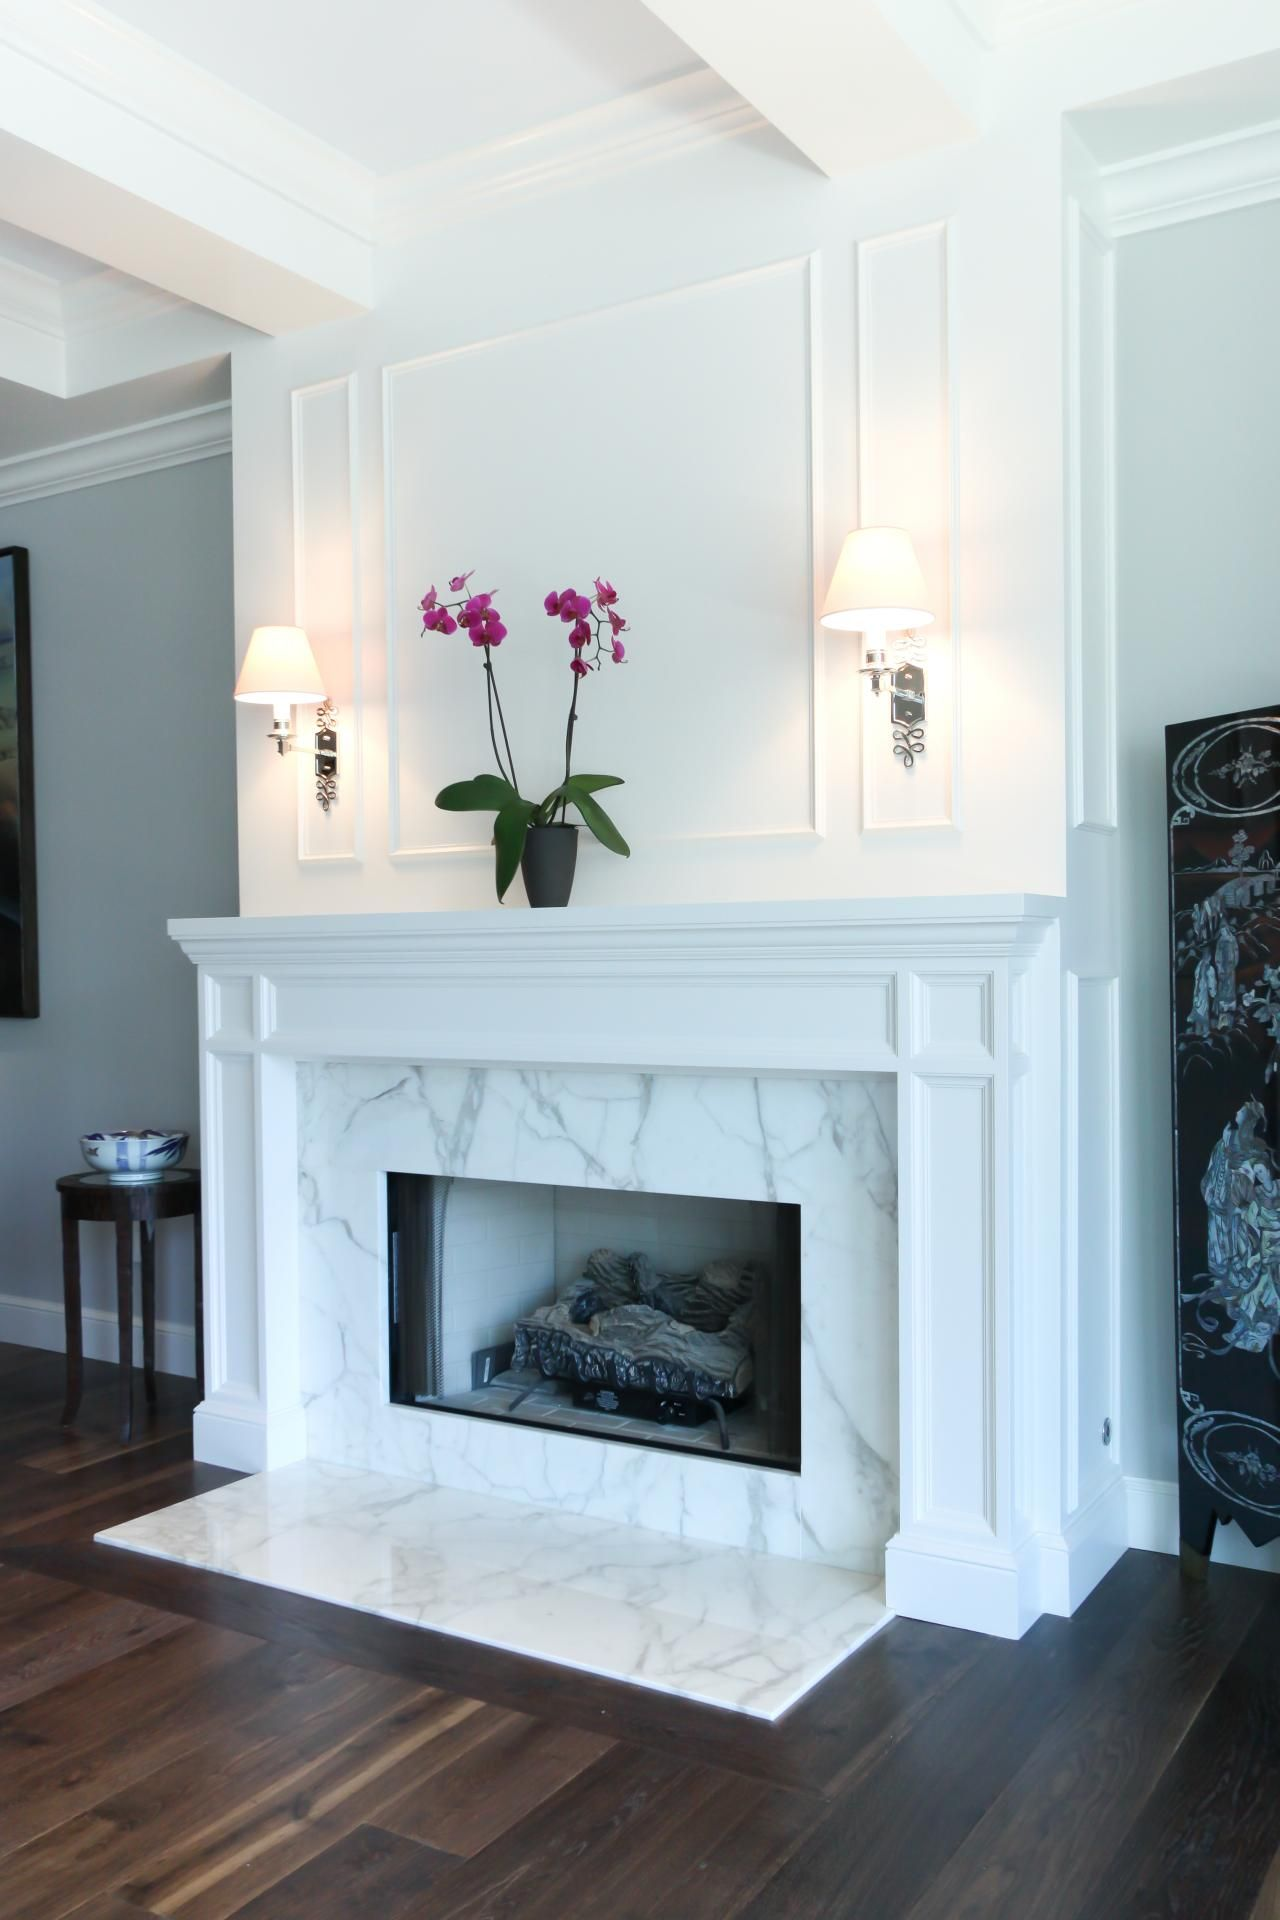 Striking Marble Fireplace In Transitional Living Room Home